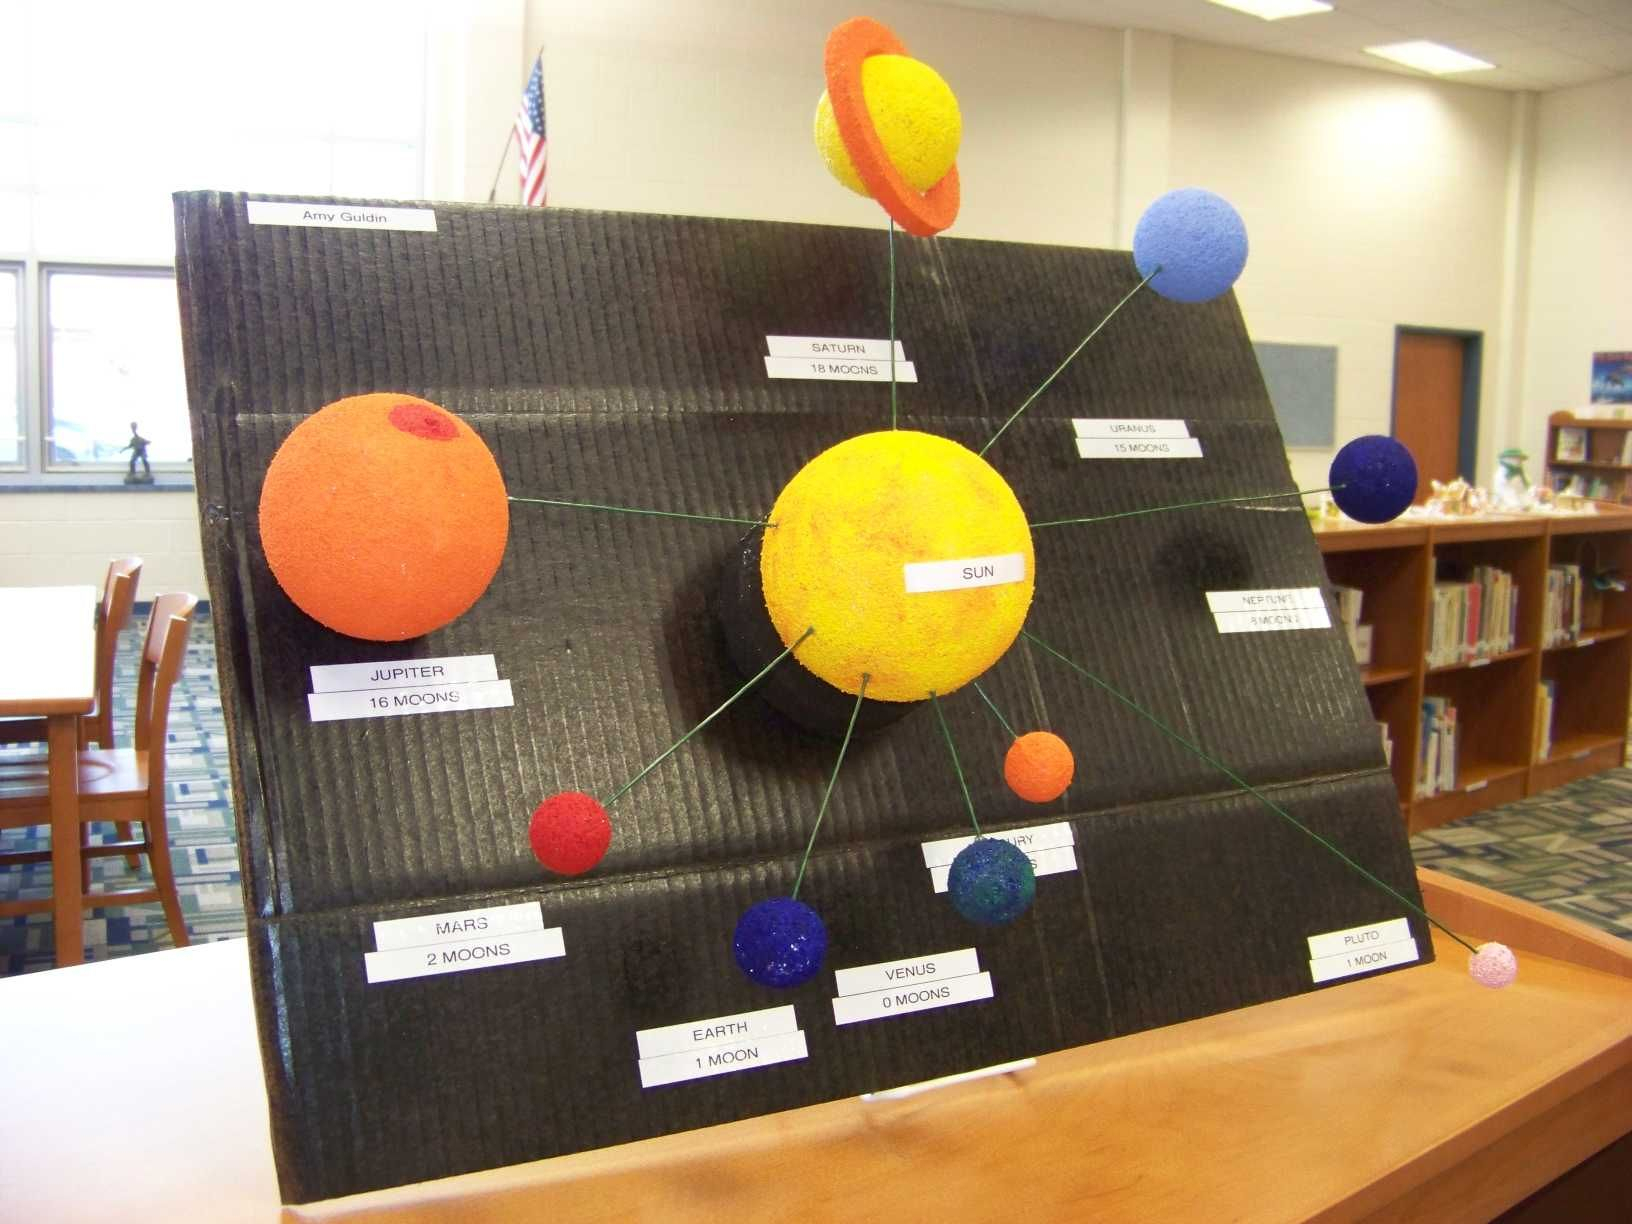 10 Nice Ideas For 3Rd Grade Science Projects solar system project ideas 3rd grade solar system projects 2020